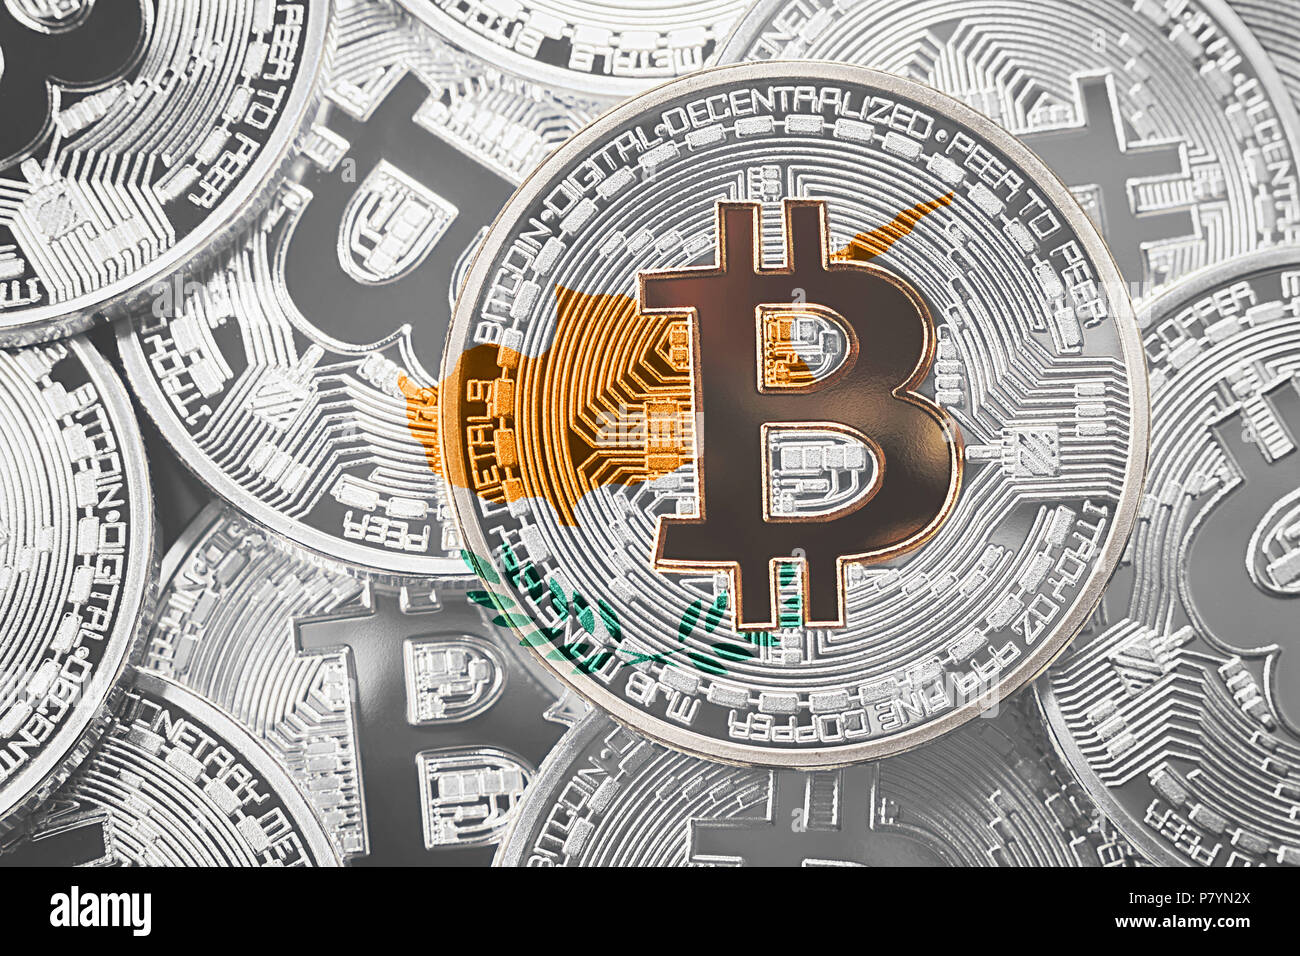 Stack of Bitcoin Cyprus flag. Bitcoin cryptocurrencies concept. BTC background. - Stock Image